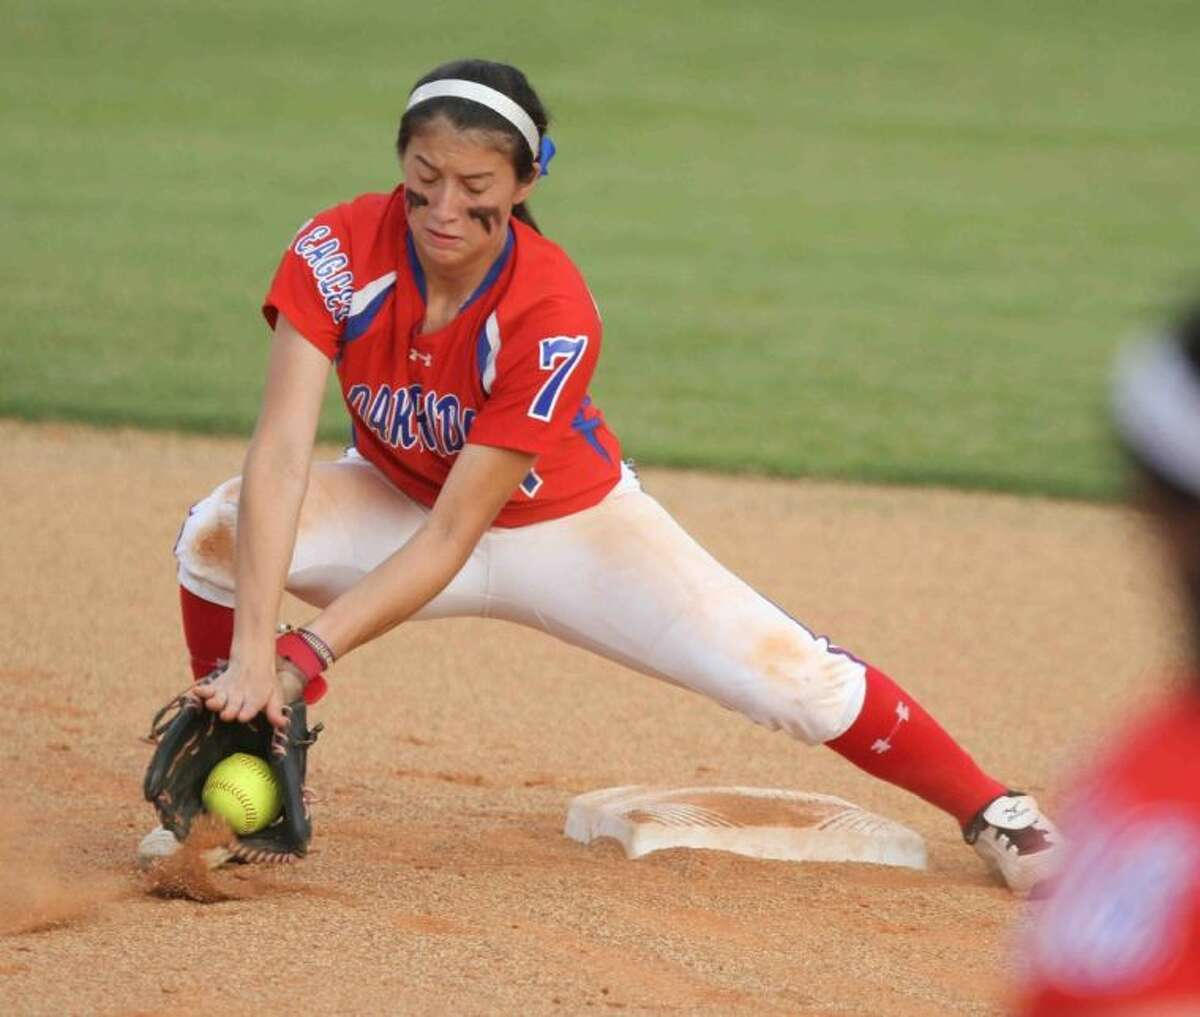 Oak Ridge sophomore Amber Serrett is the Courier's Defensive Most Valuable Player.